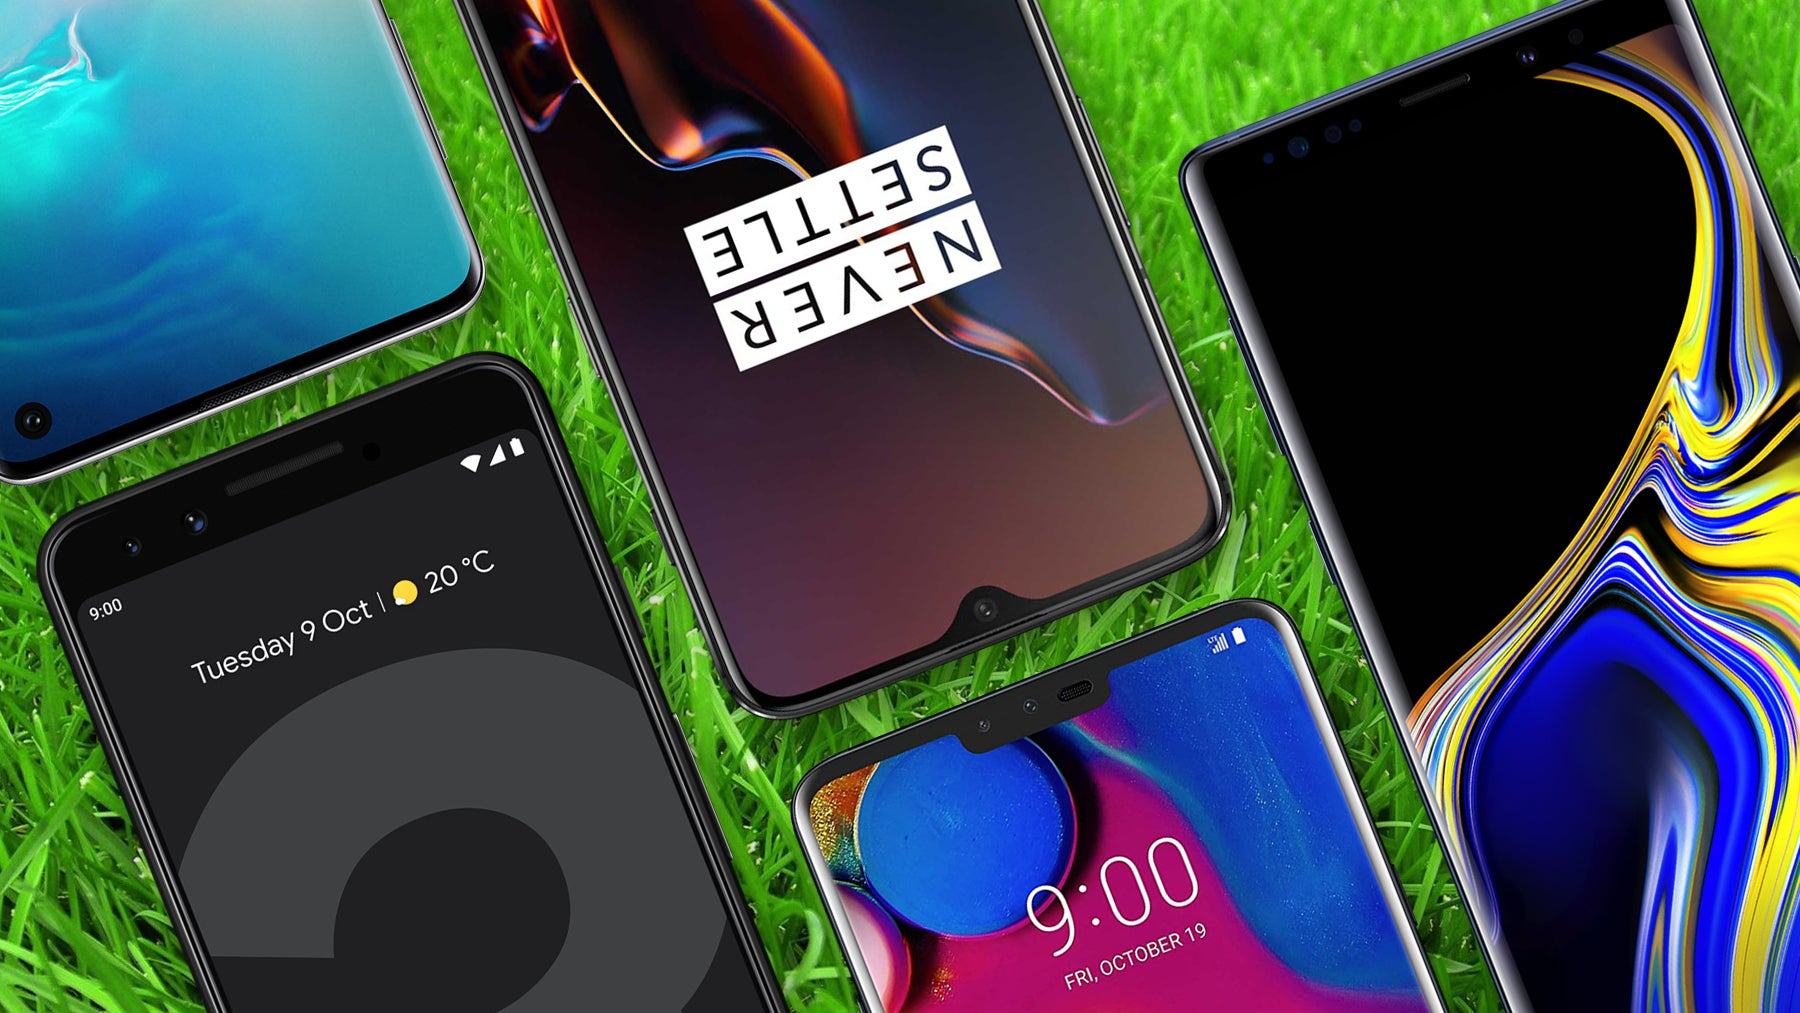 Best Android phones 2019: Reviews and buying advice | Greenbot